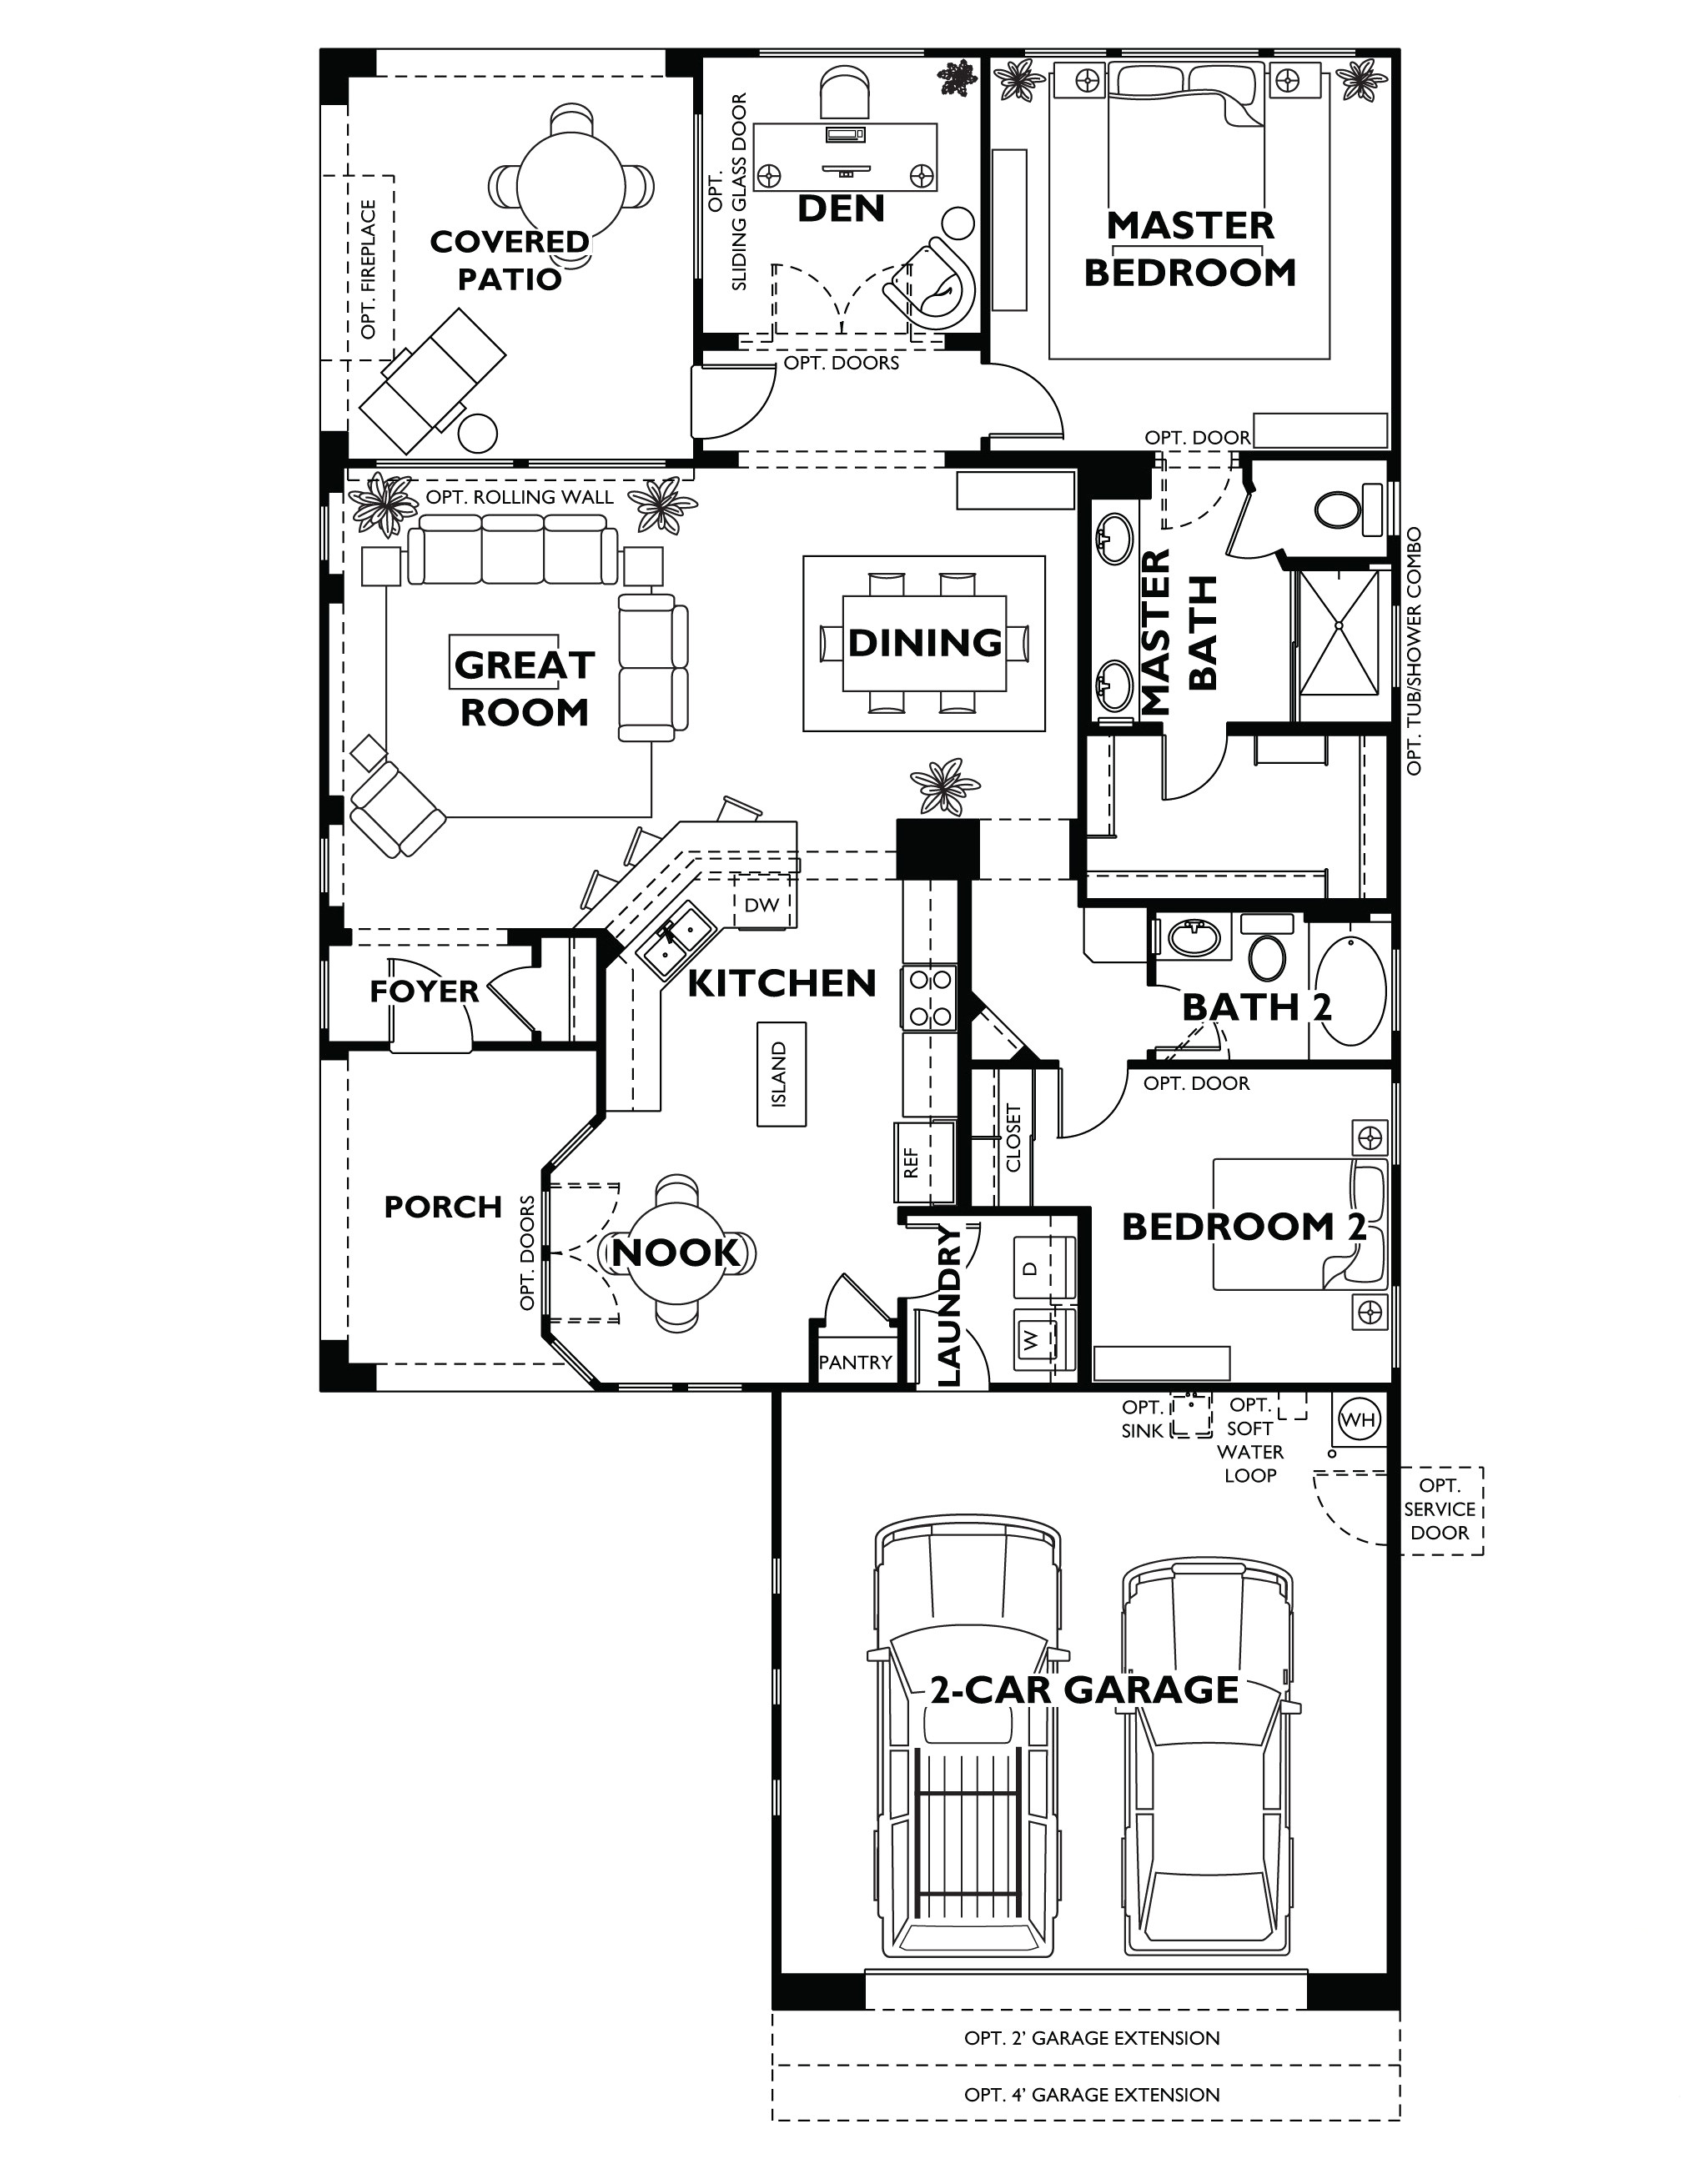 hubbell homes floor plans lovely graham floorplan hubbell homes building new homes in des